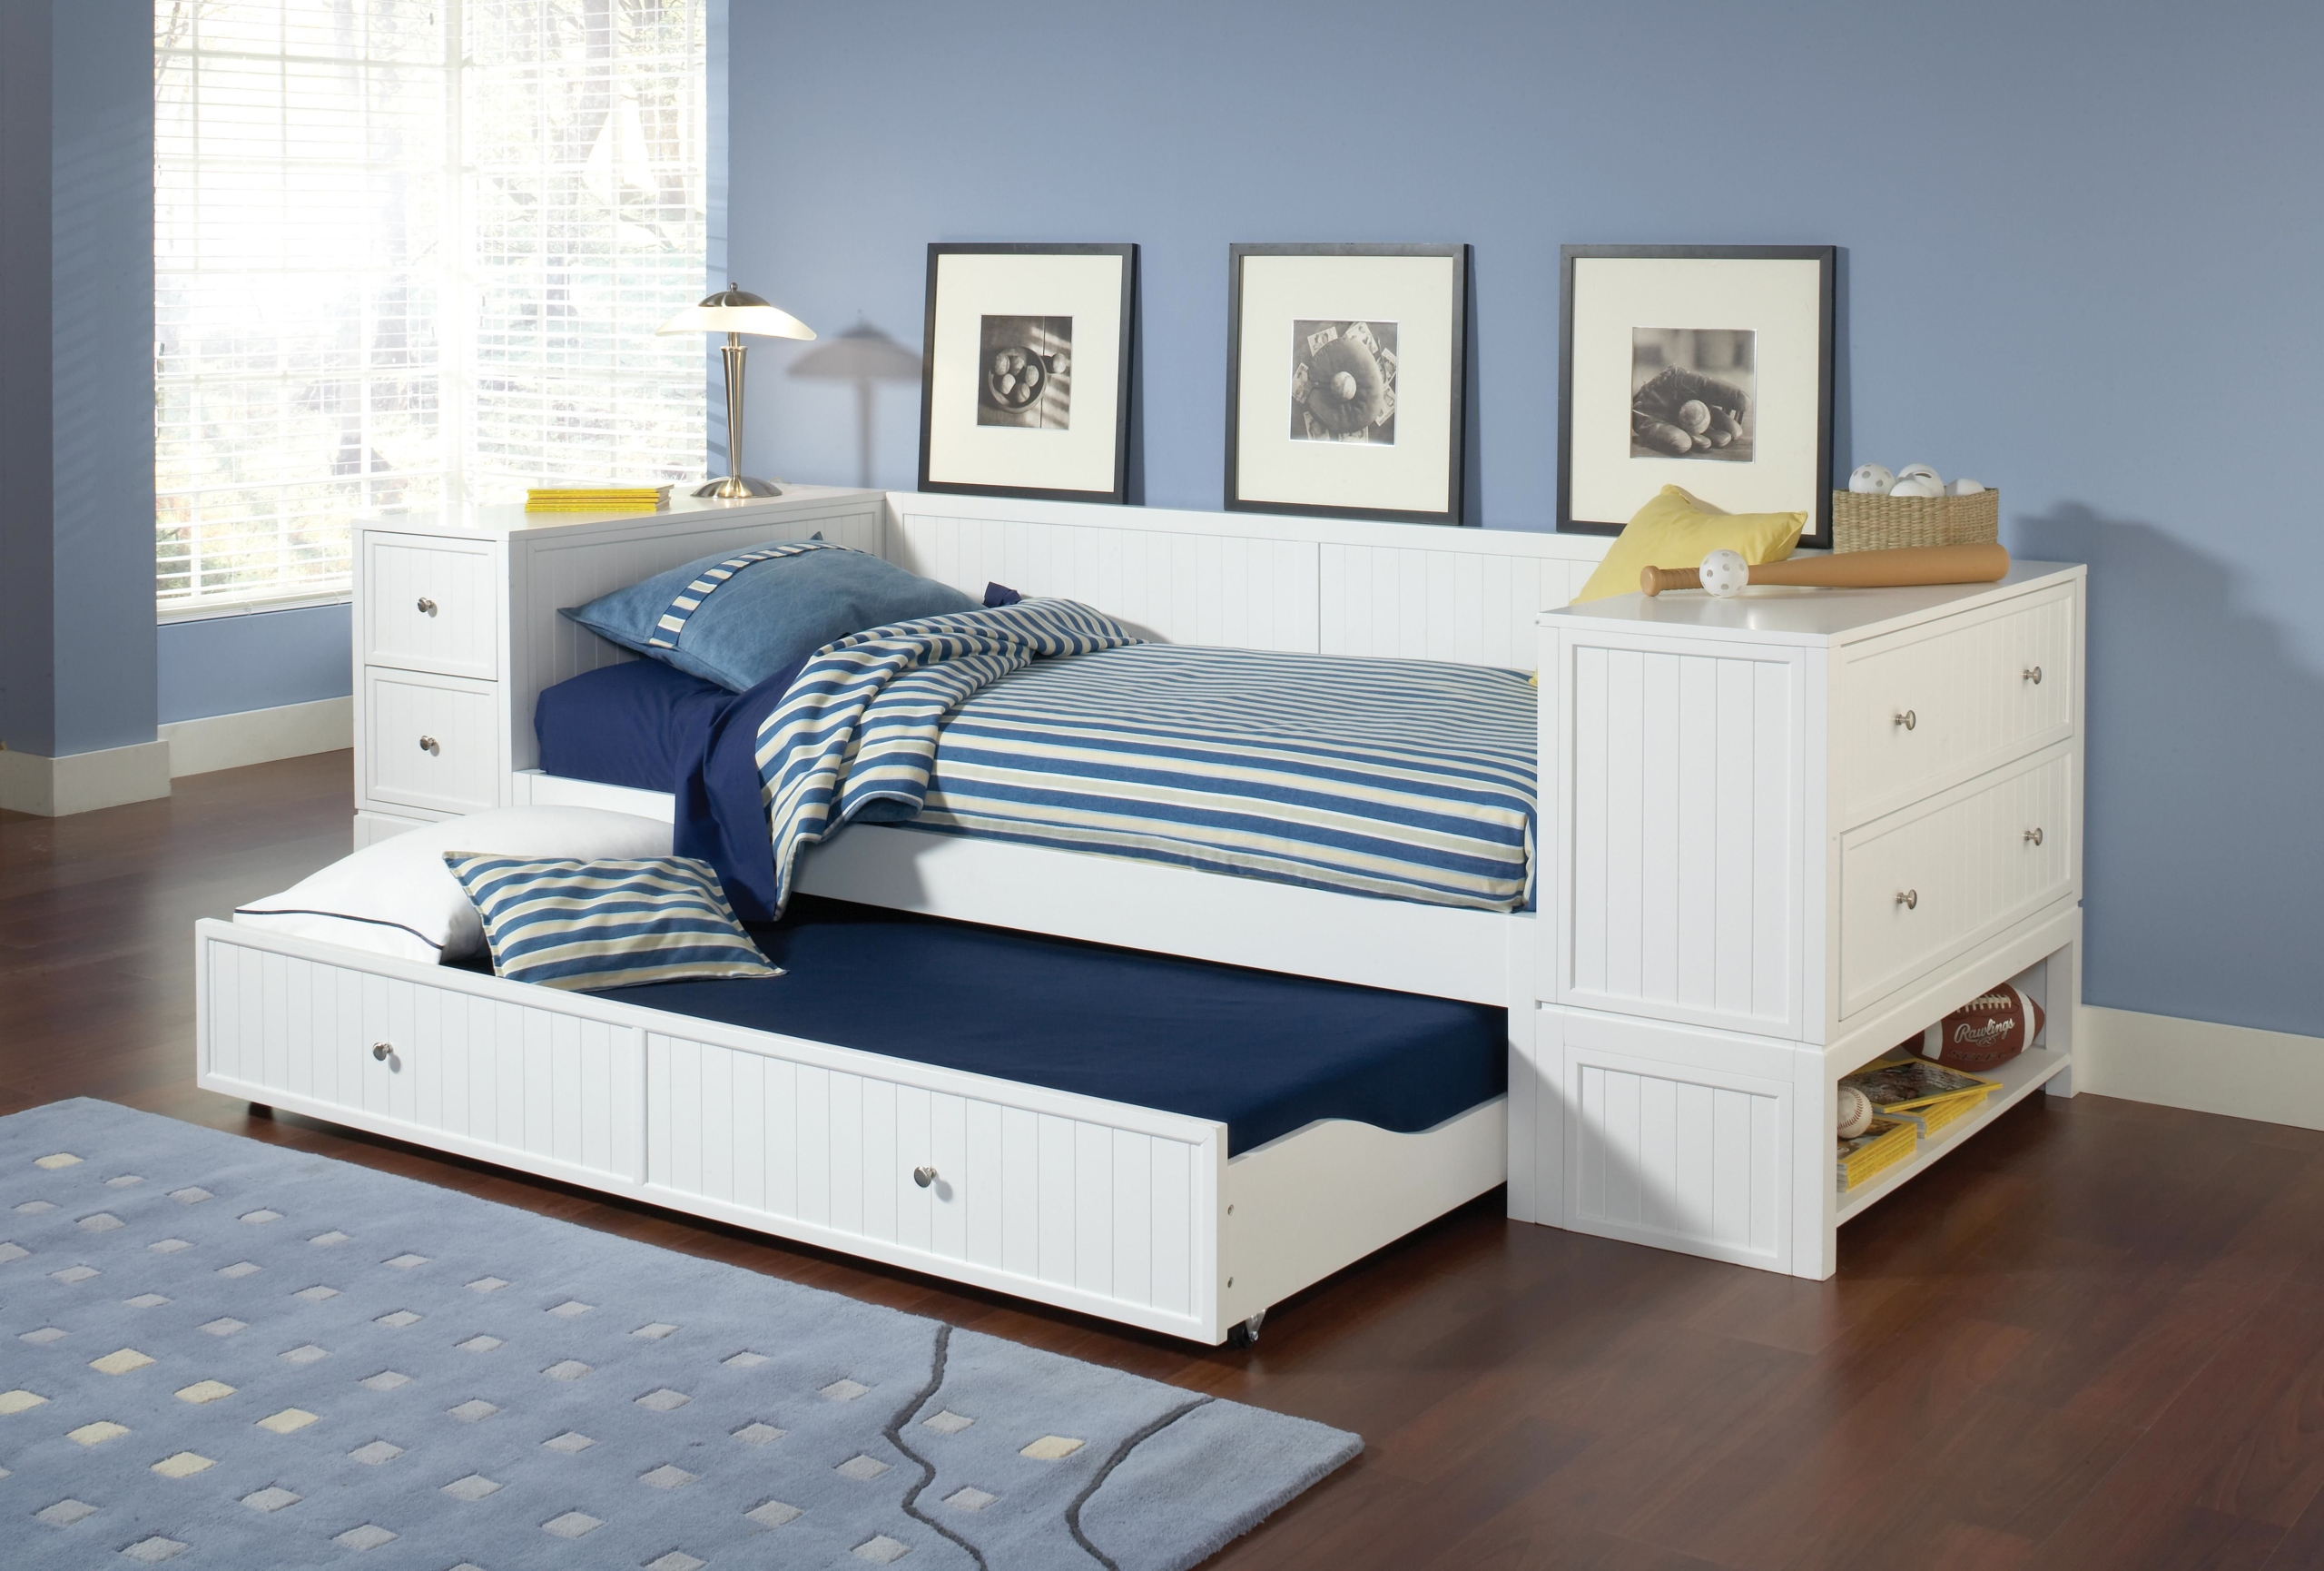 The inman company cody trundle daybed